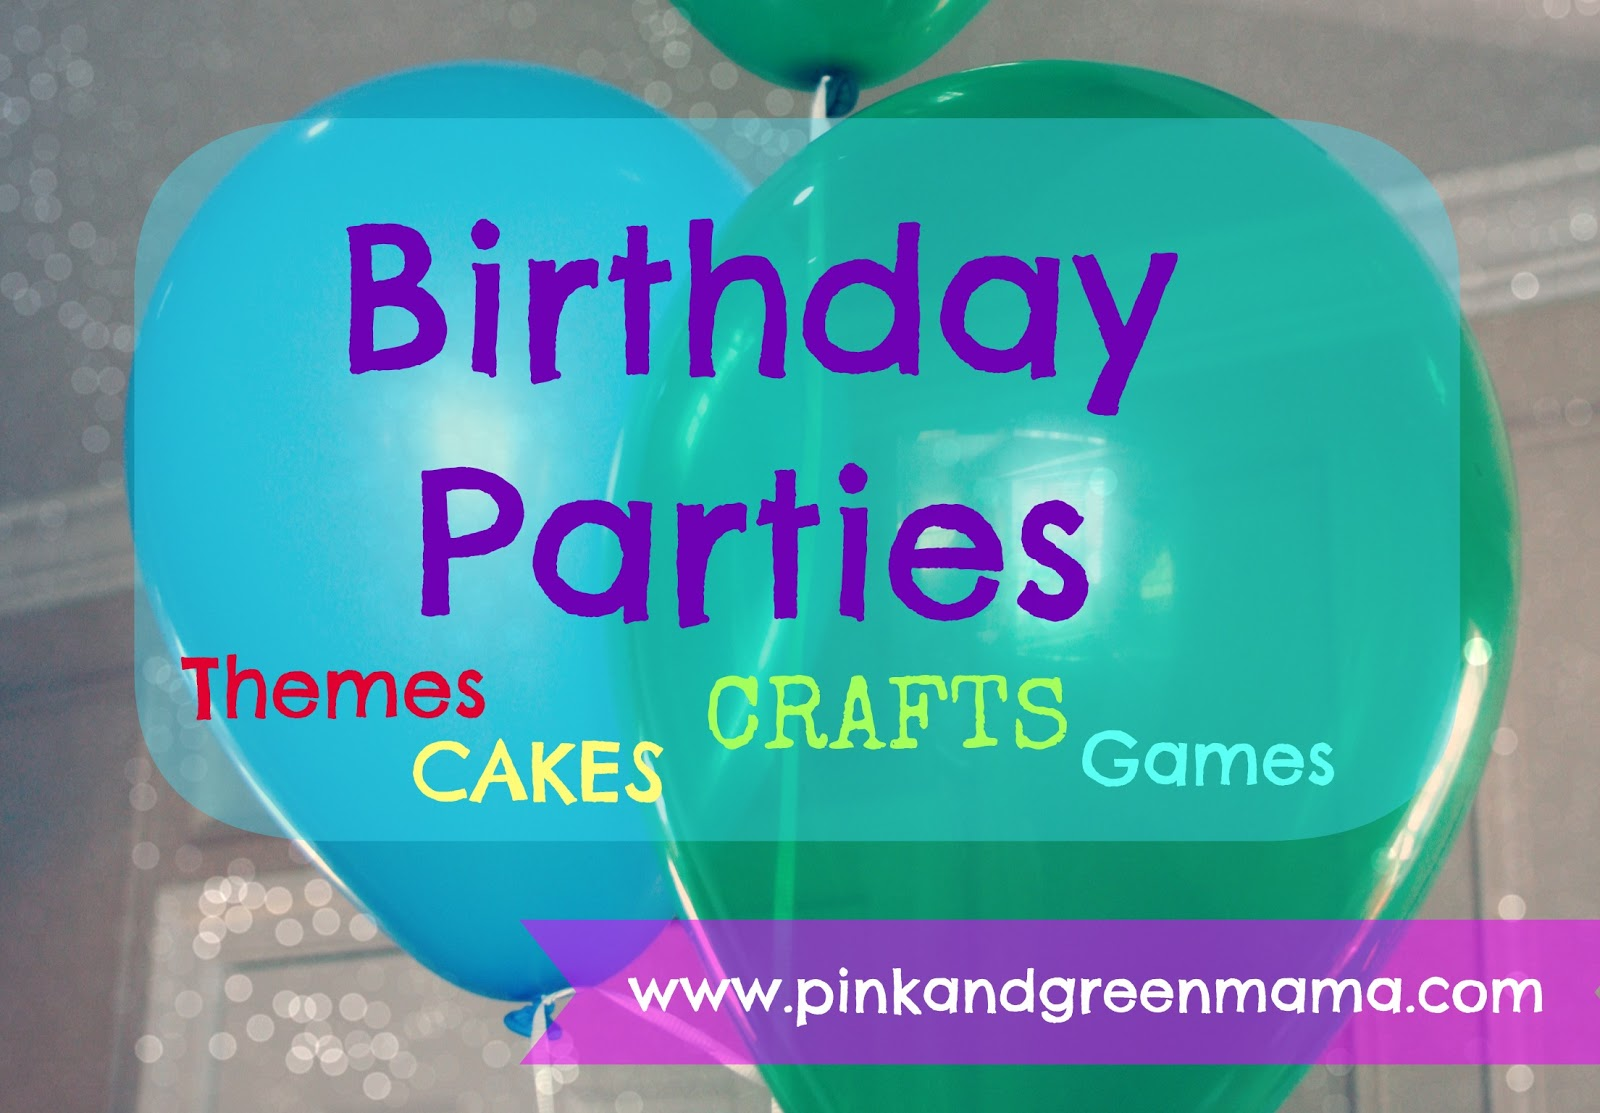 Terraria Birthday Party Ideas Homemade Mother Day Crafts For Preschoolers